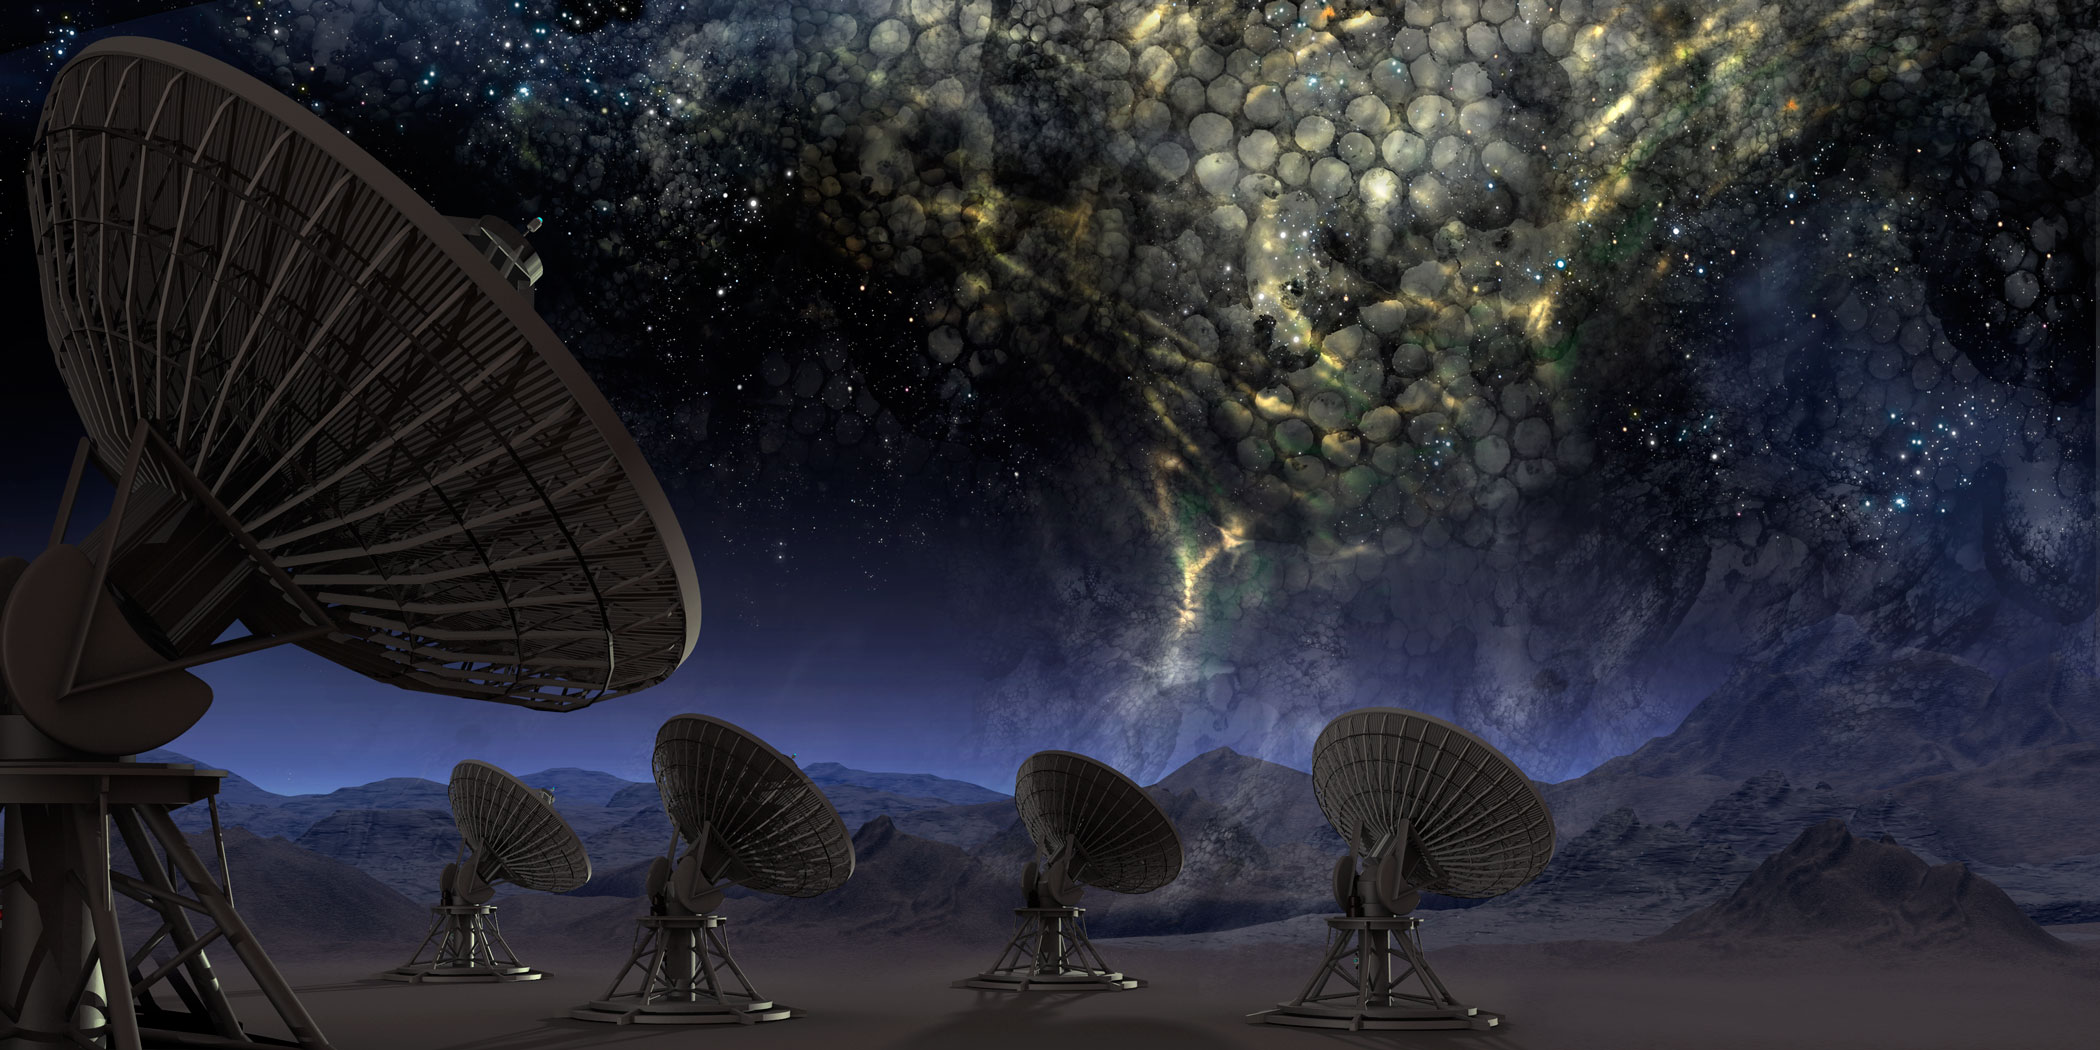 If Aliens Contact Us, We Won't Understand